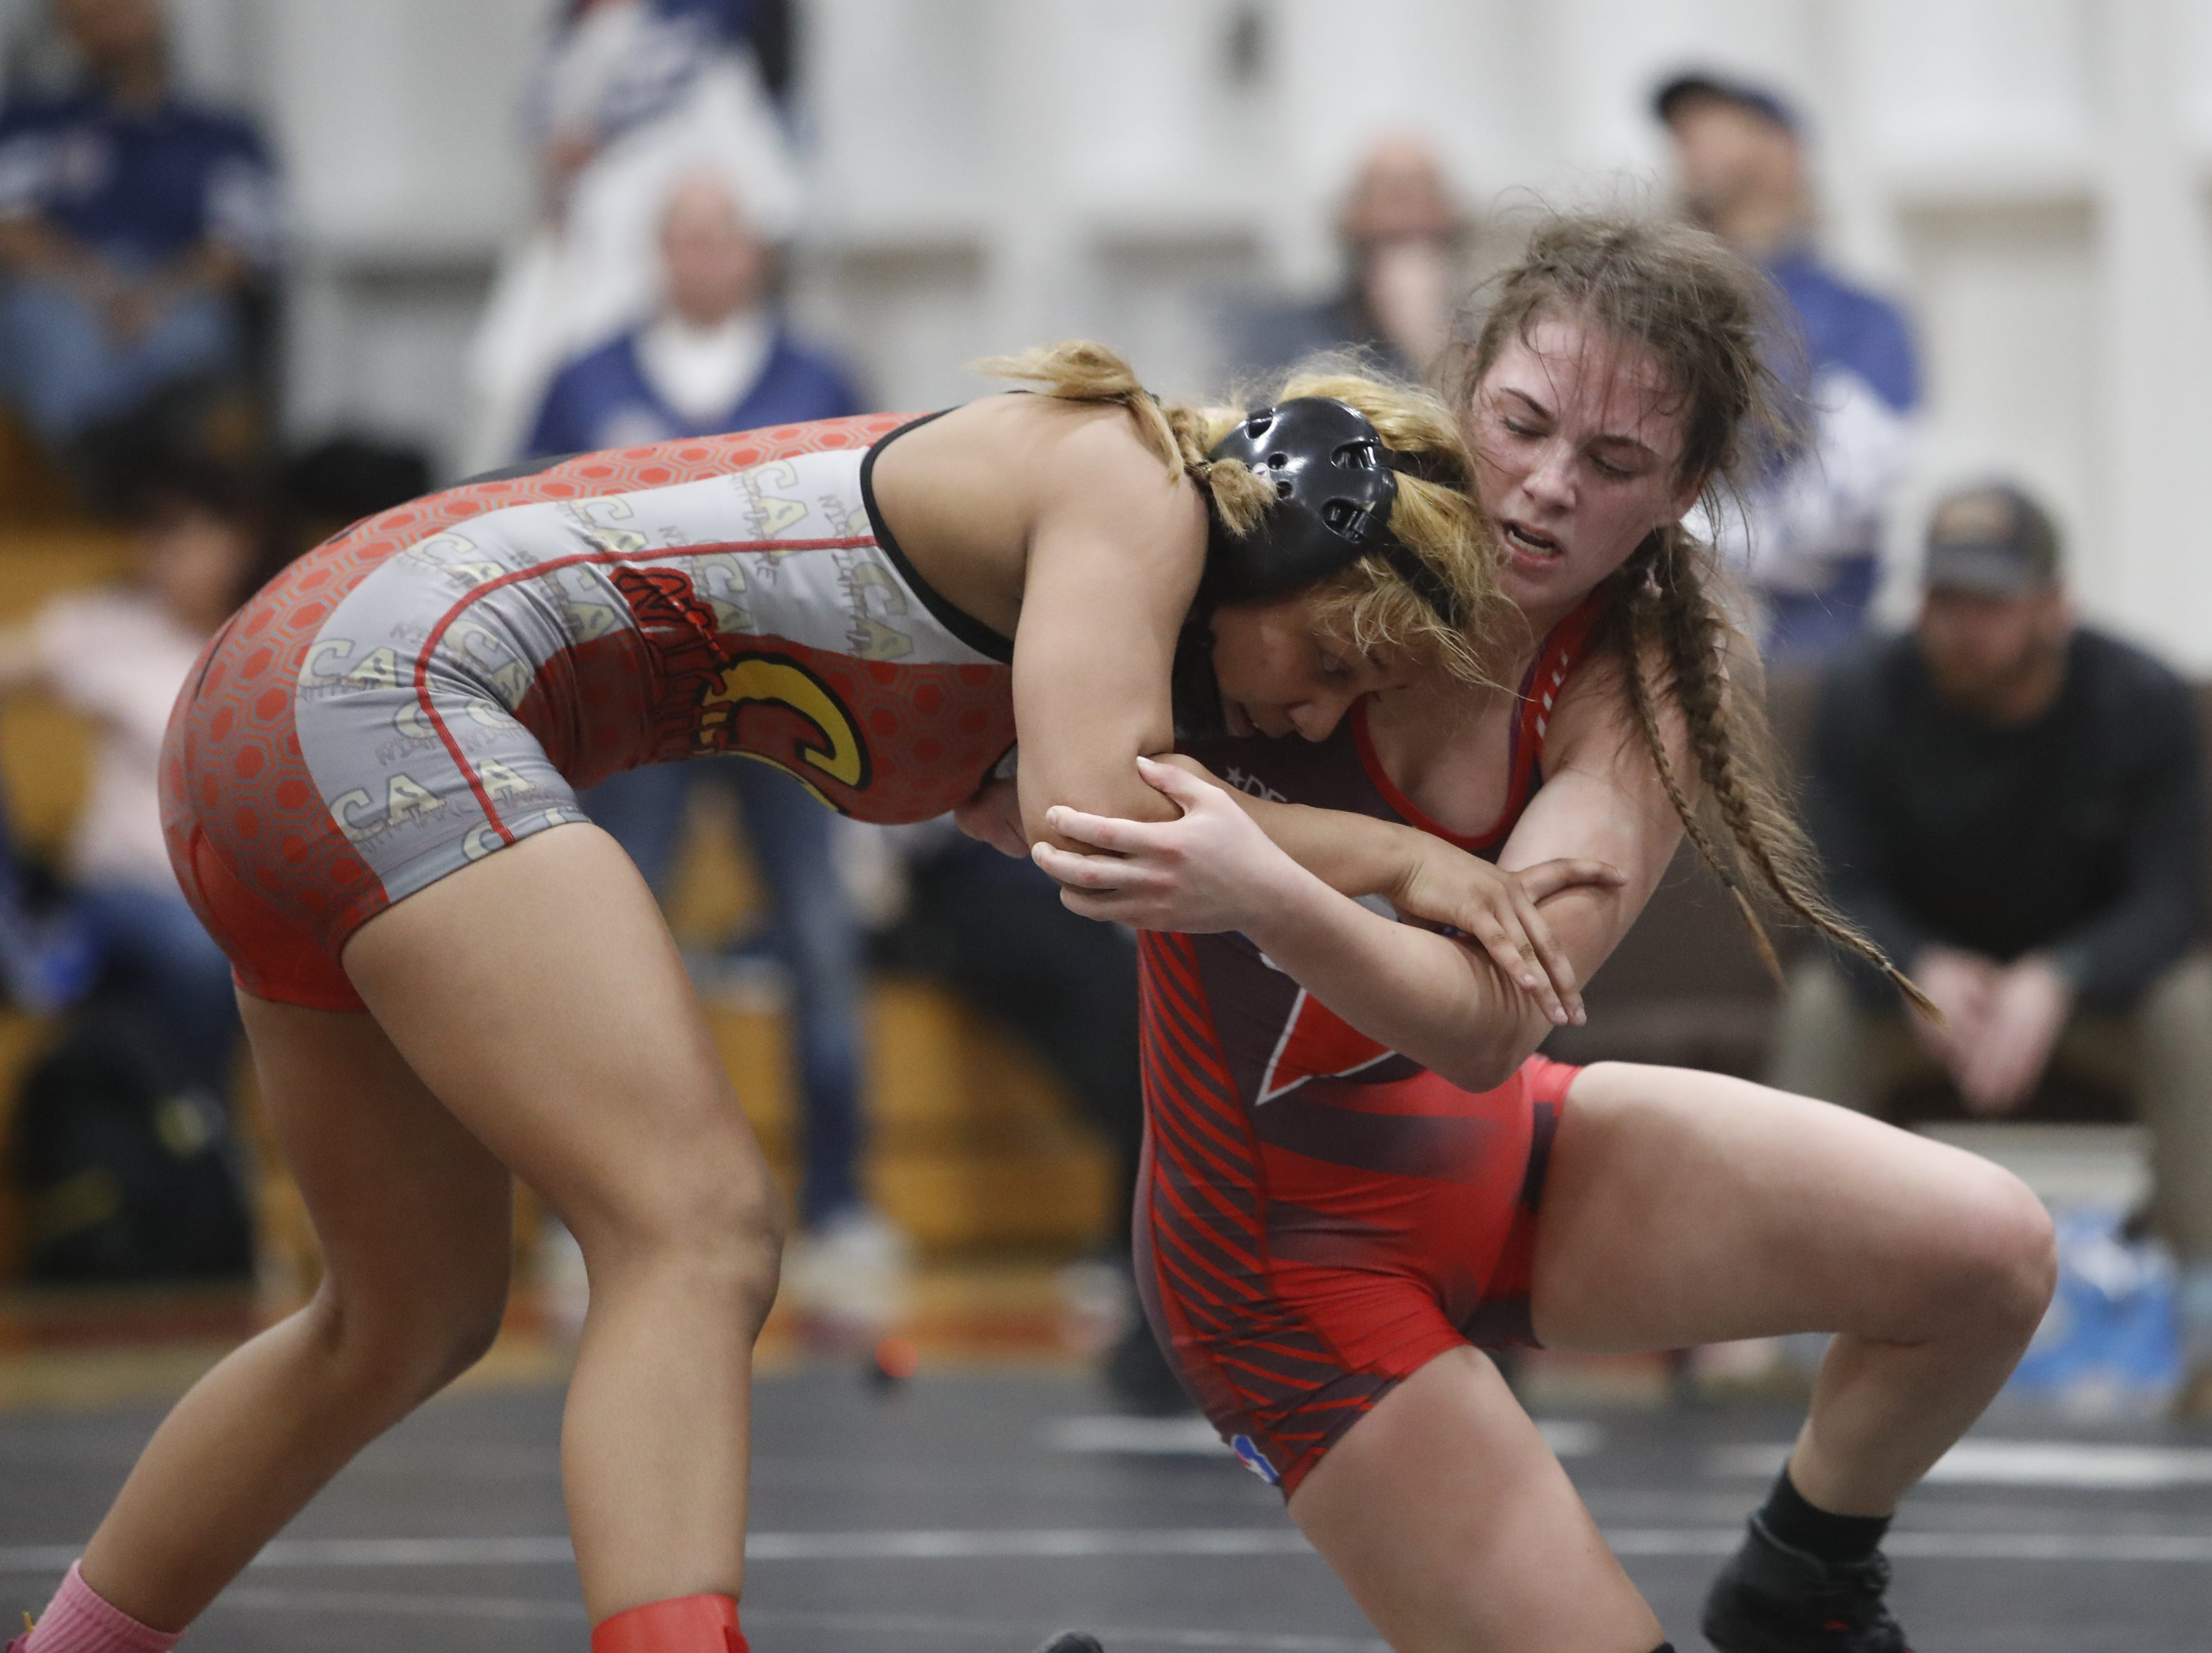 California's Jennifer Soto of Orland (left) wrestles against Oregon's Marissa Kurtz of Sweet Home at the ORCA Senior All-Star Duals at Simpson University on Saturday, March 9. Soto won the match with a 15-5 decision.